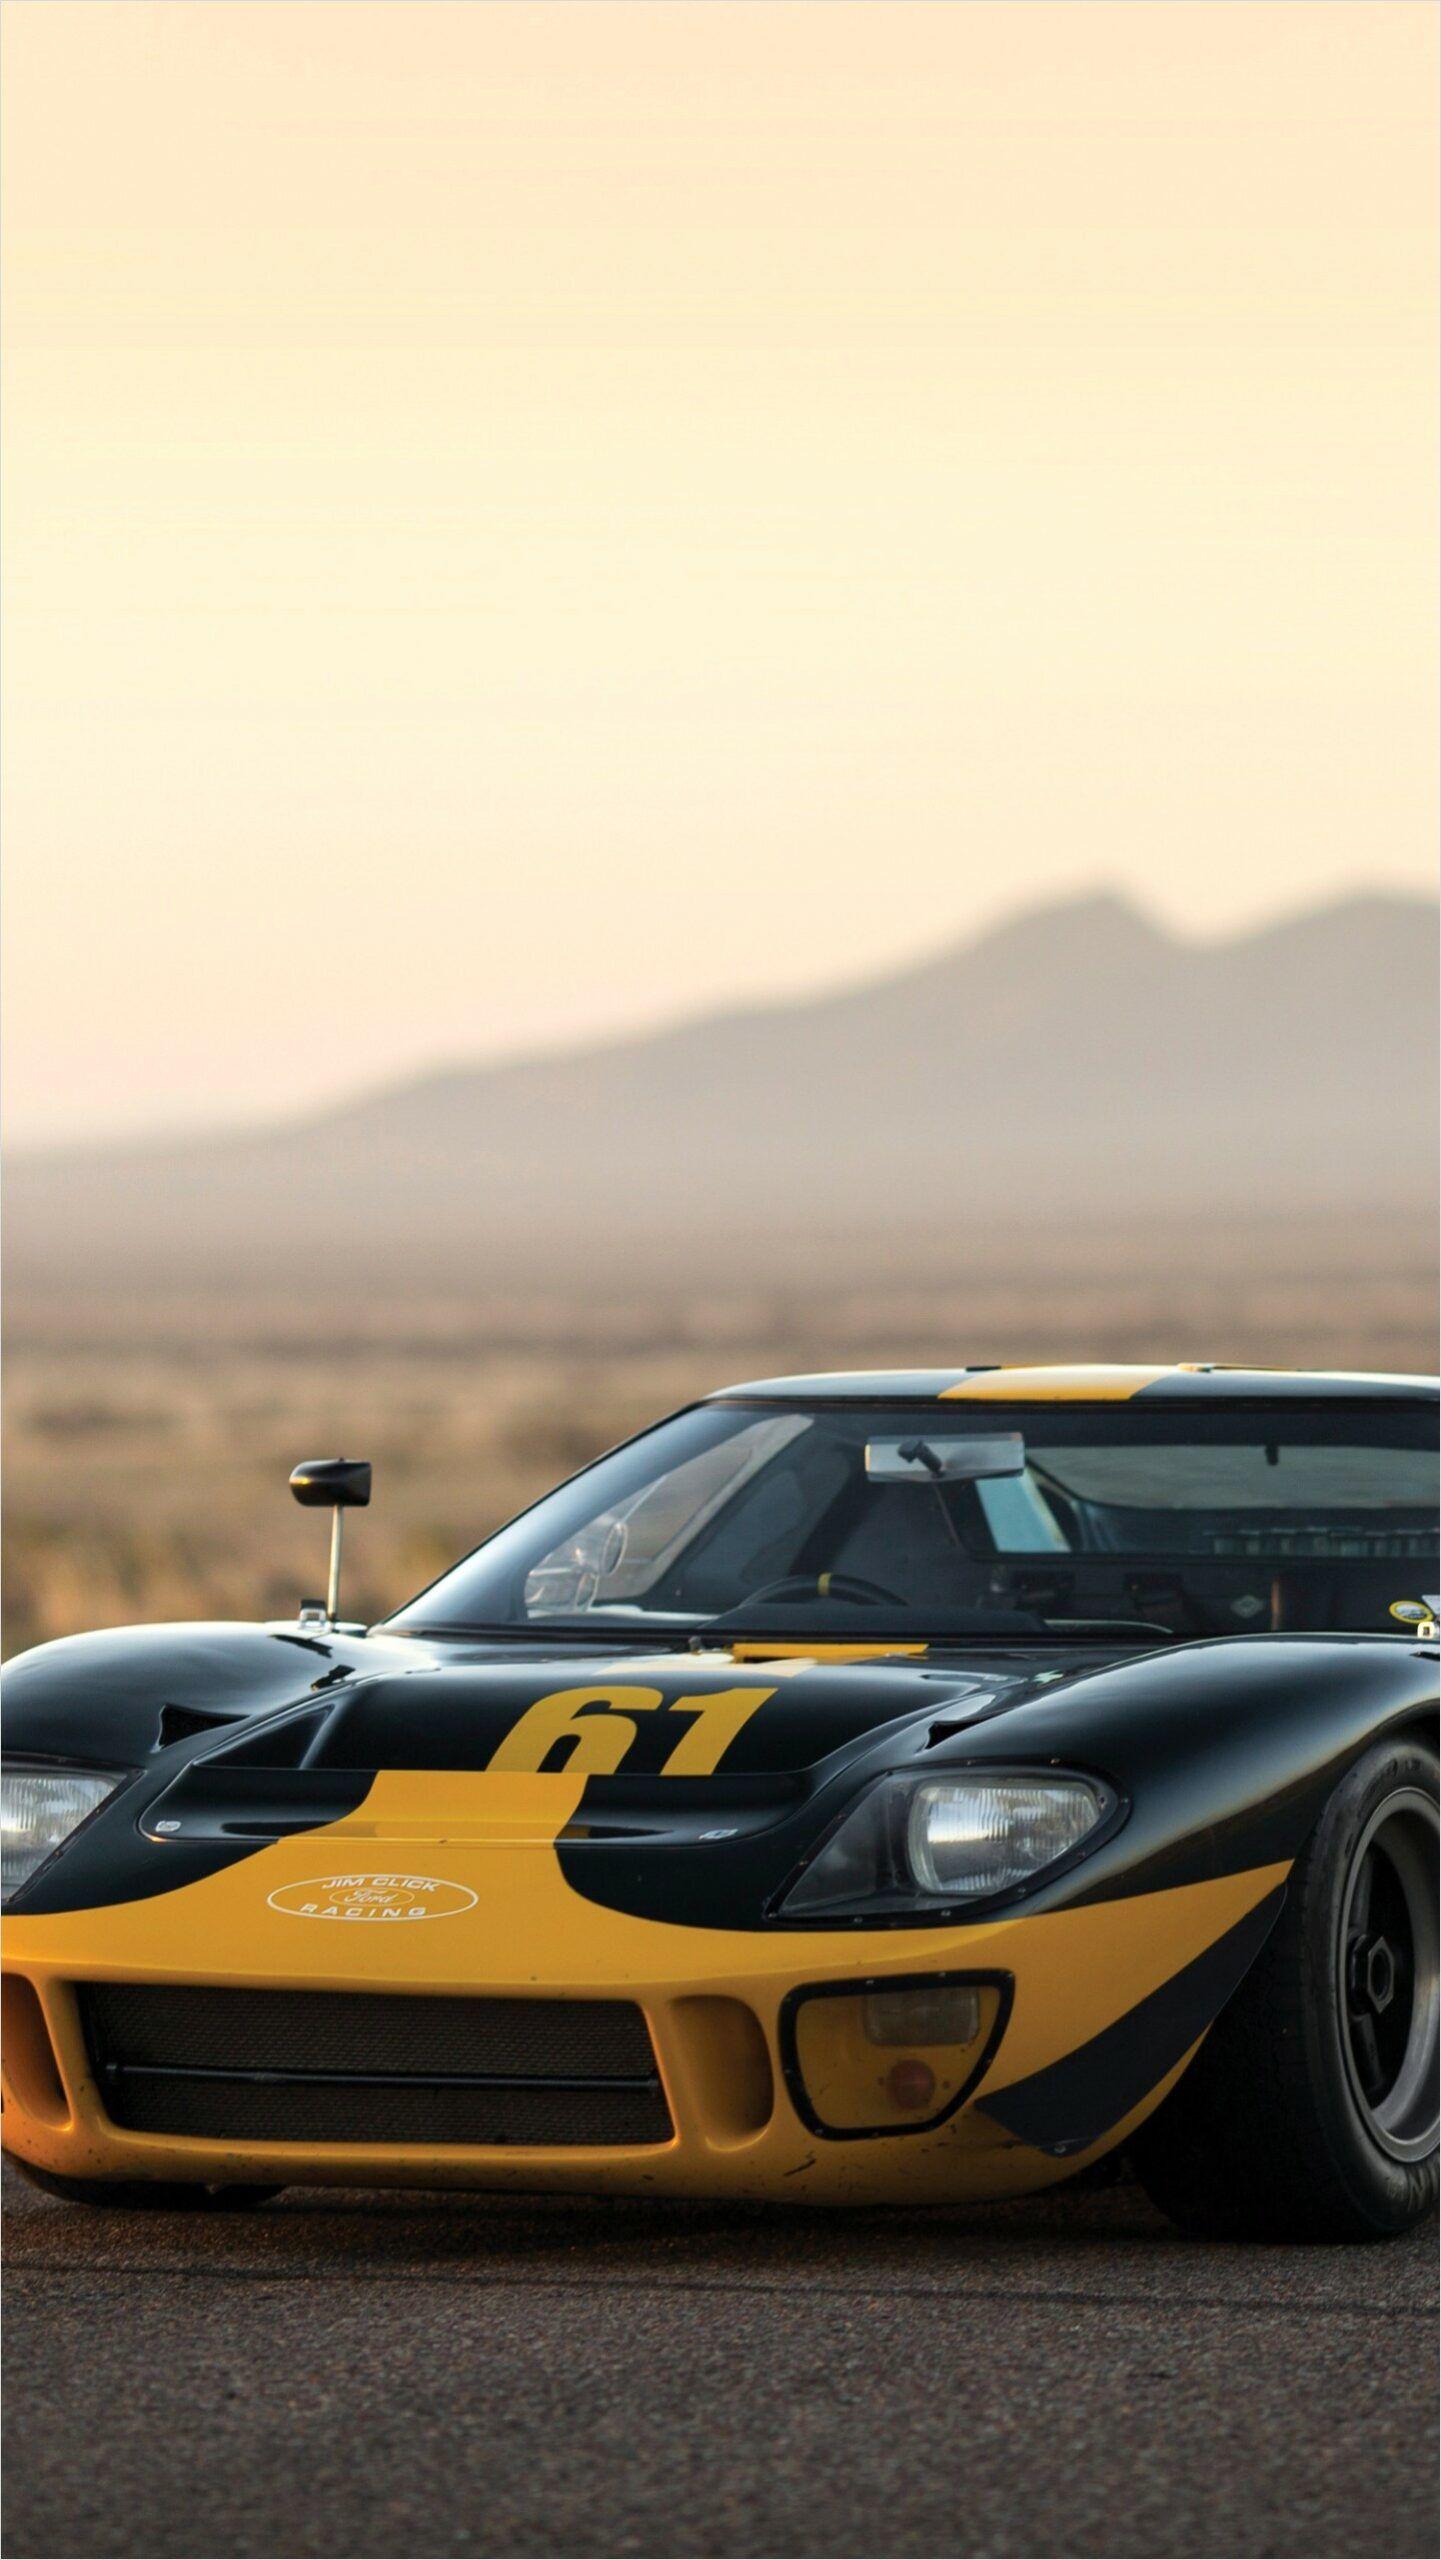 Ford Gt40 Wallpaper 4k In 2020 Ford Gt40 Gt40 Ford